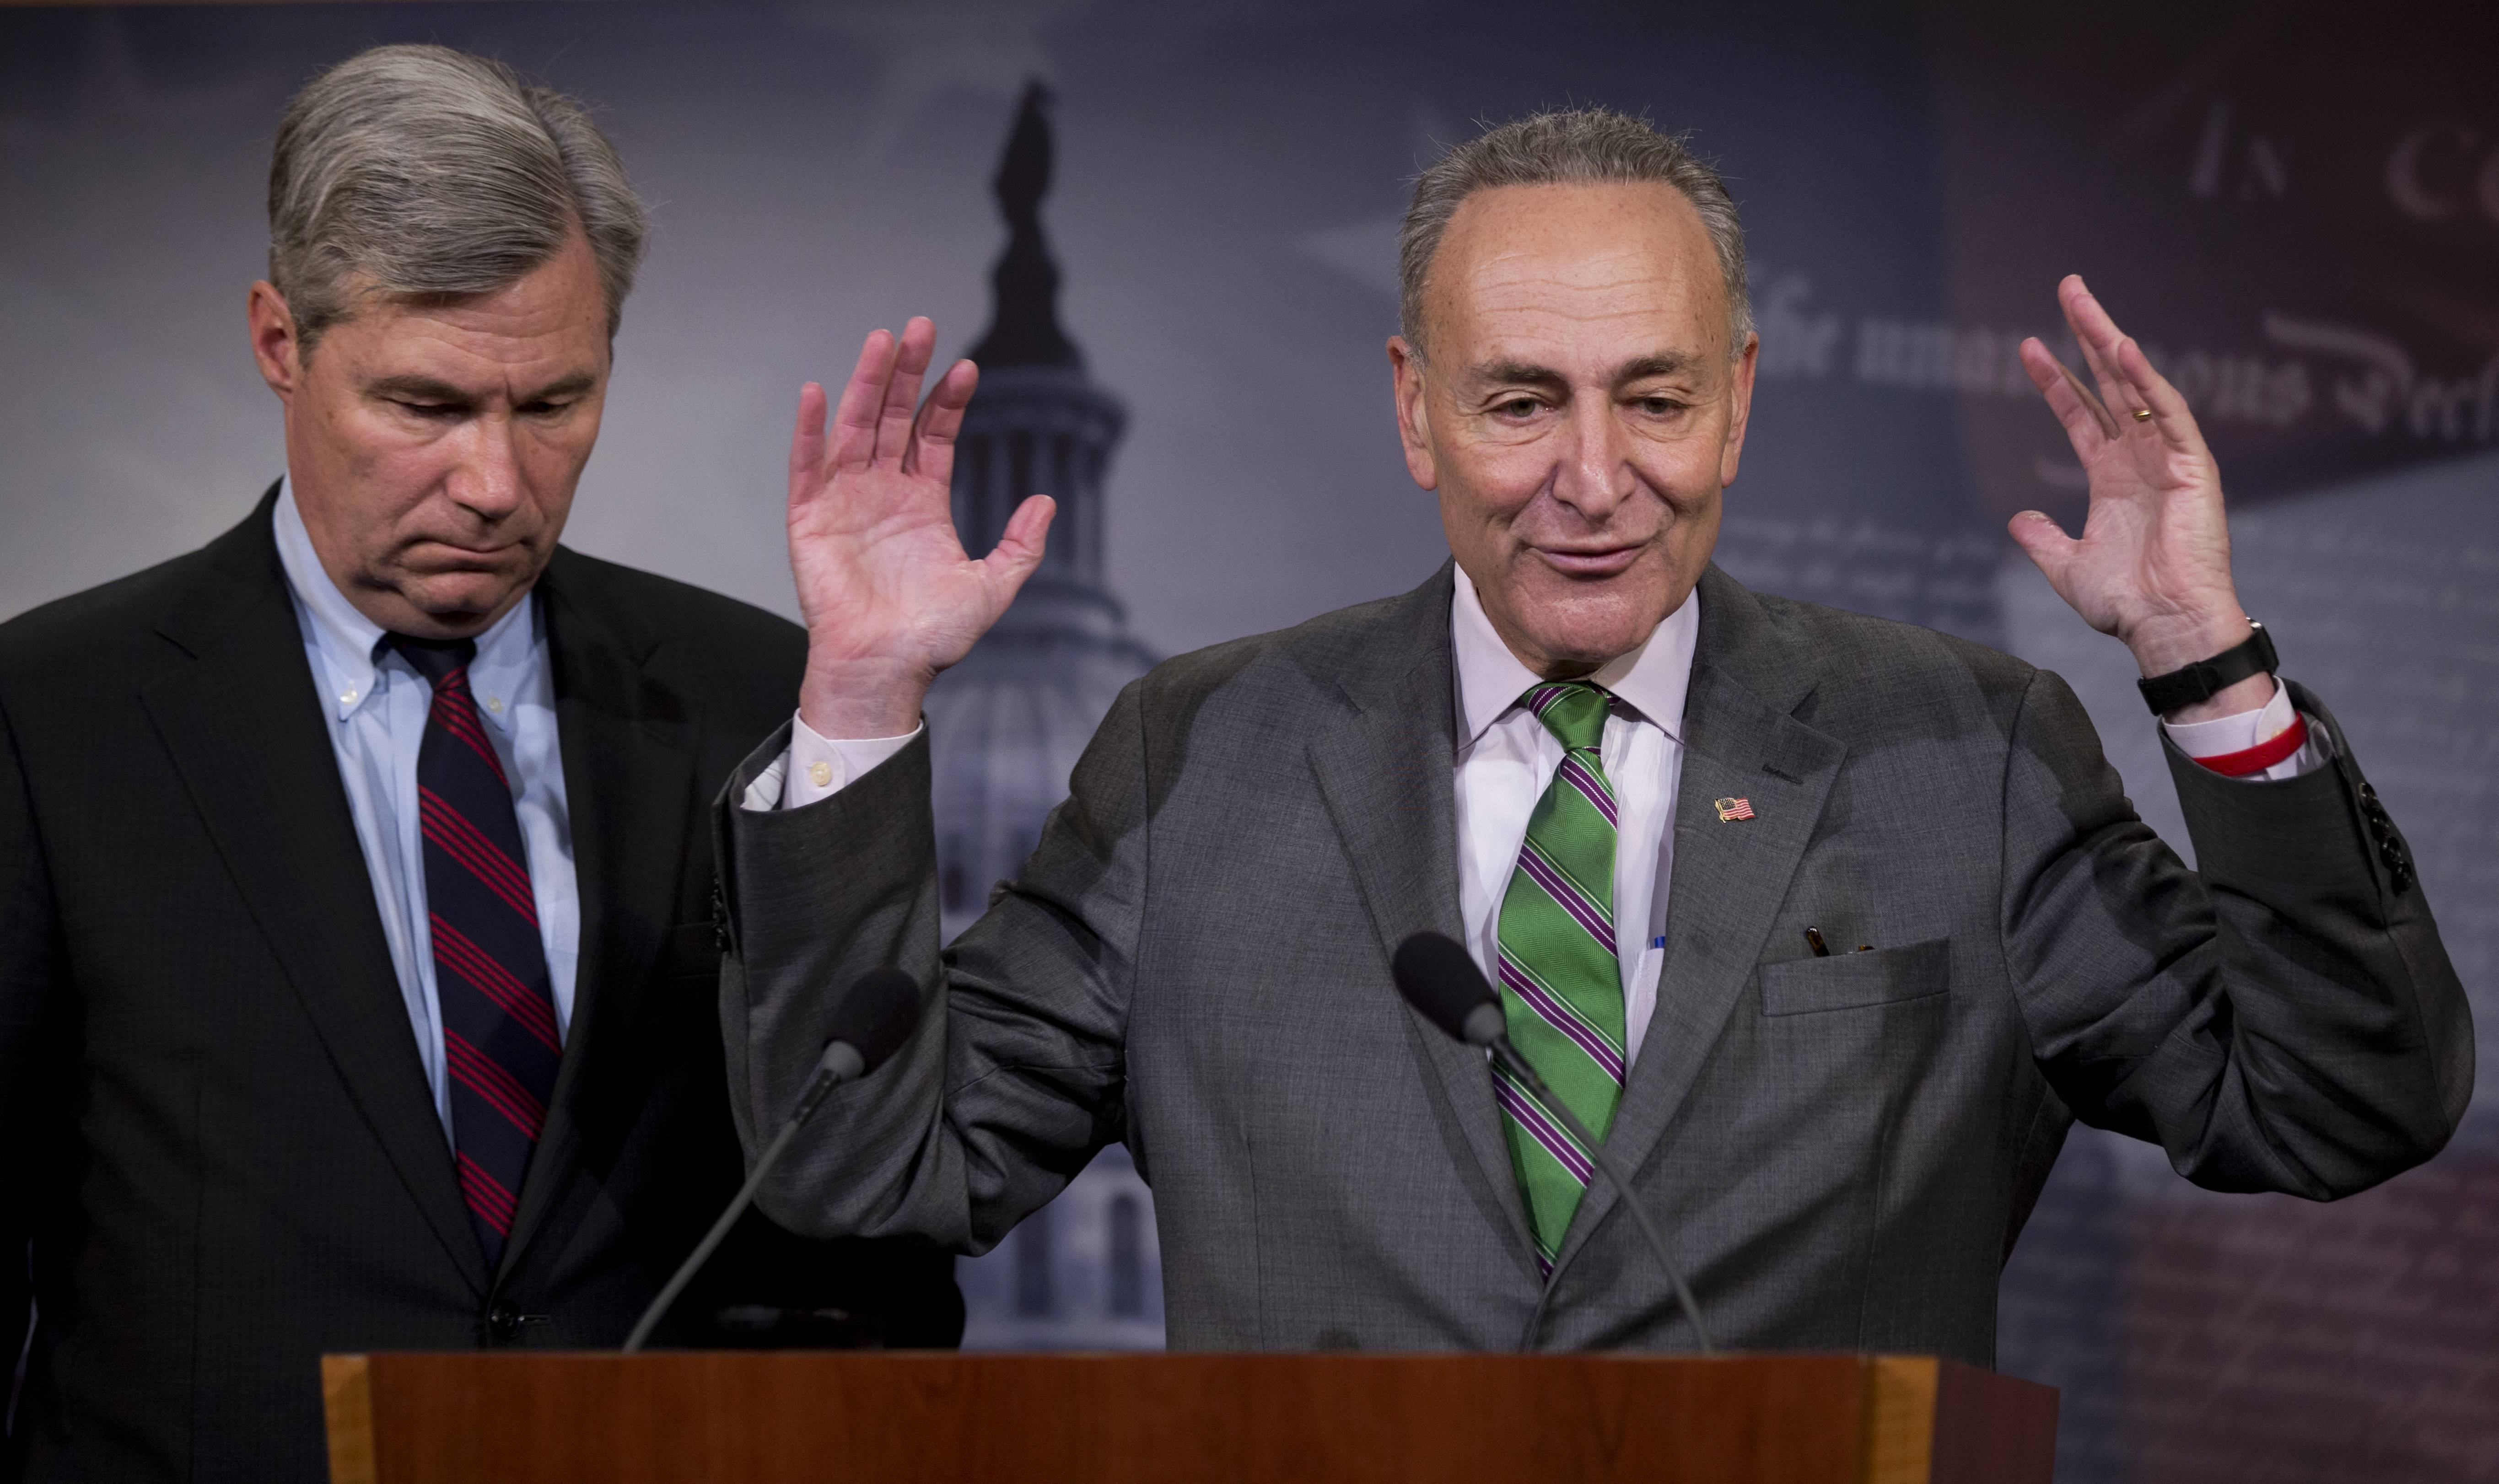 Democratic Sens. Charles Schumer of New York, right, and Sheldon Whitehouse of Rhode Island discuss the Supreme Court�s decision to strike down limits in federal law on the aggregate campaign contributions individual donors may make to candidates, political parties and political action committees, Wednesday on Capitol Hill.